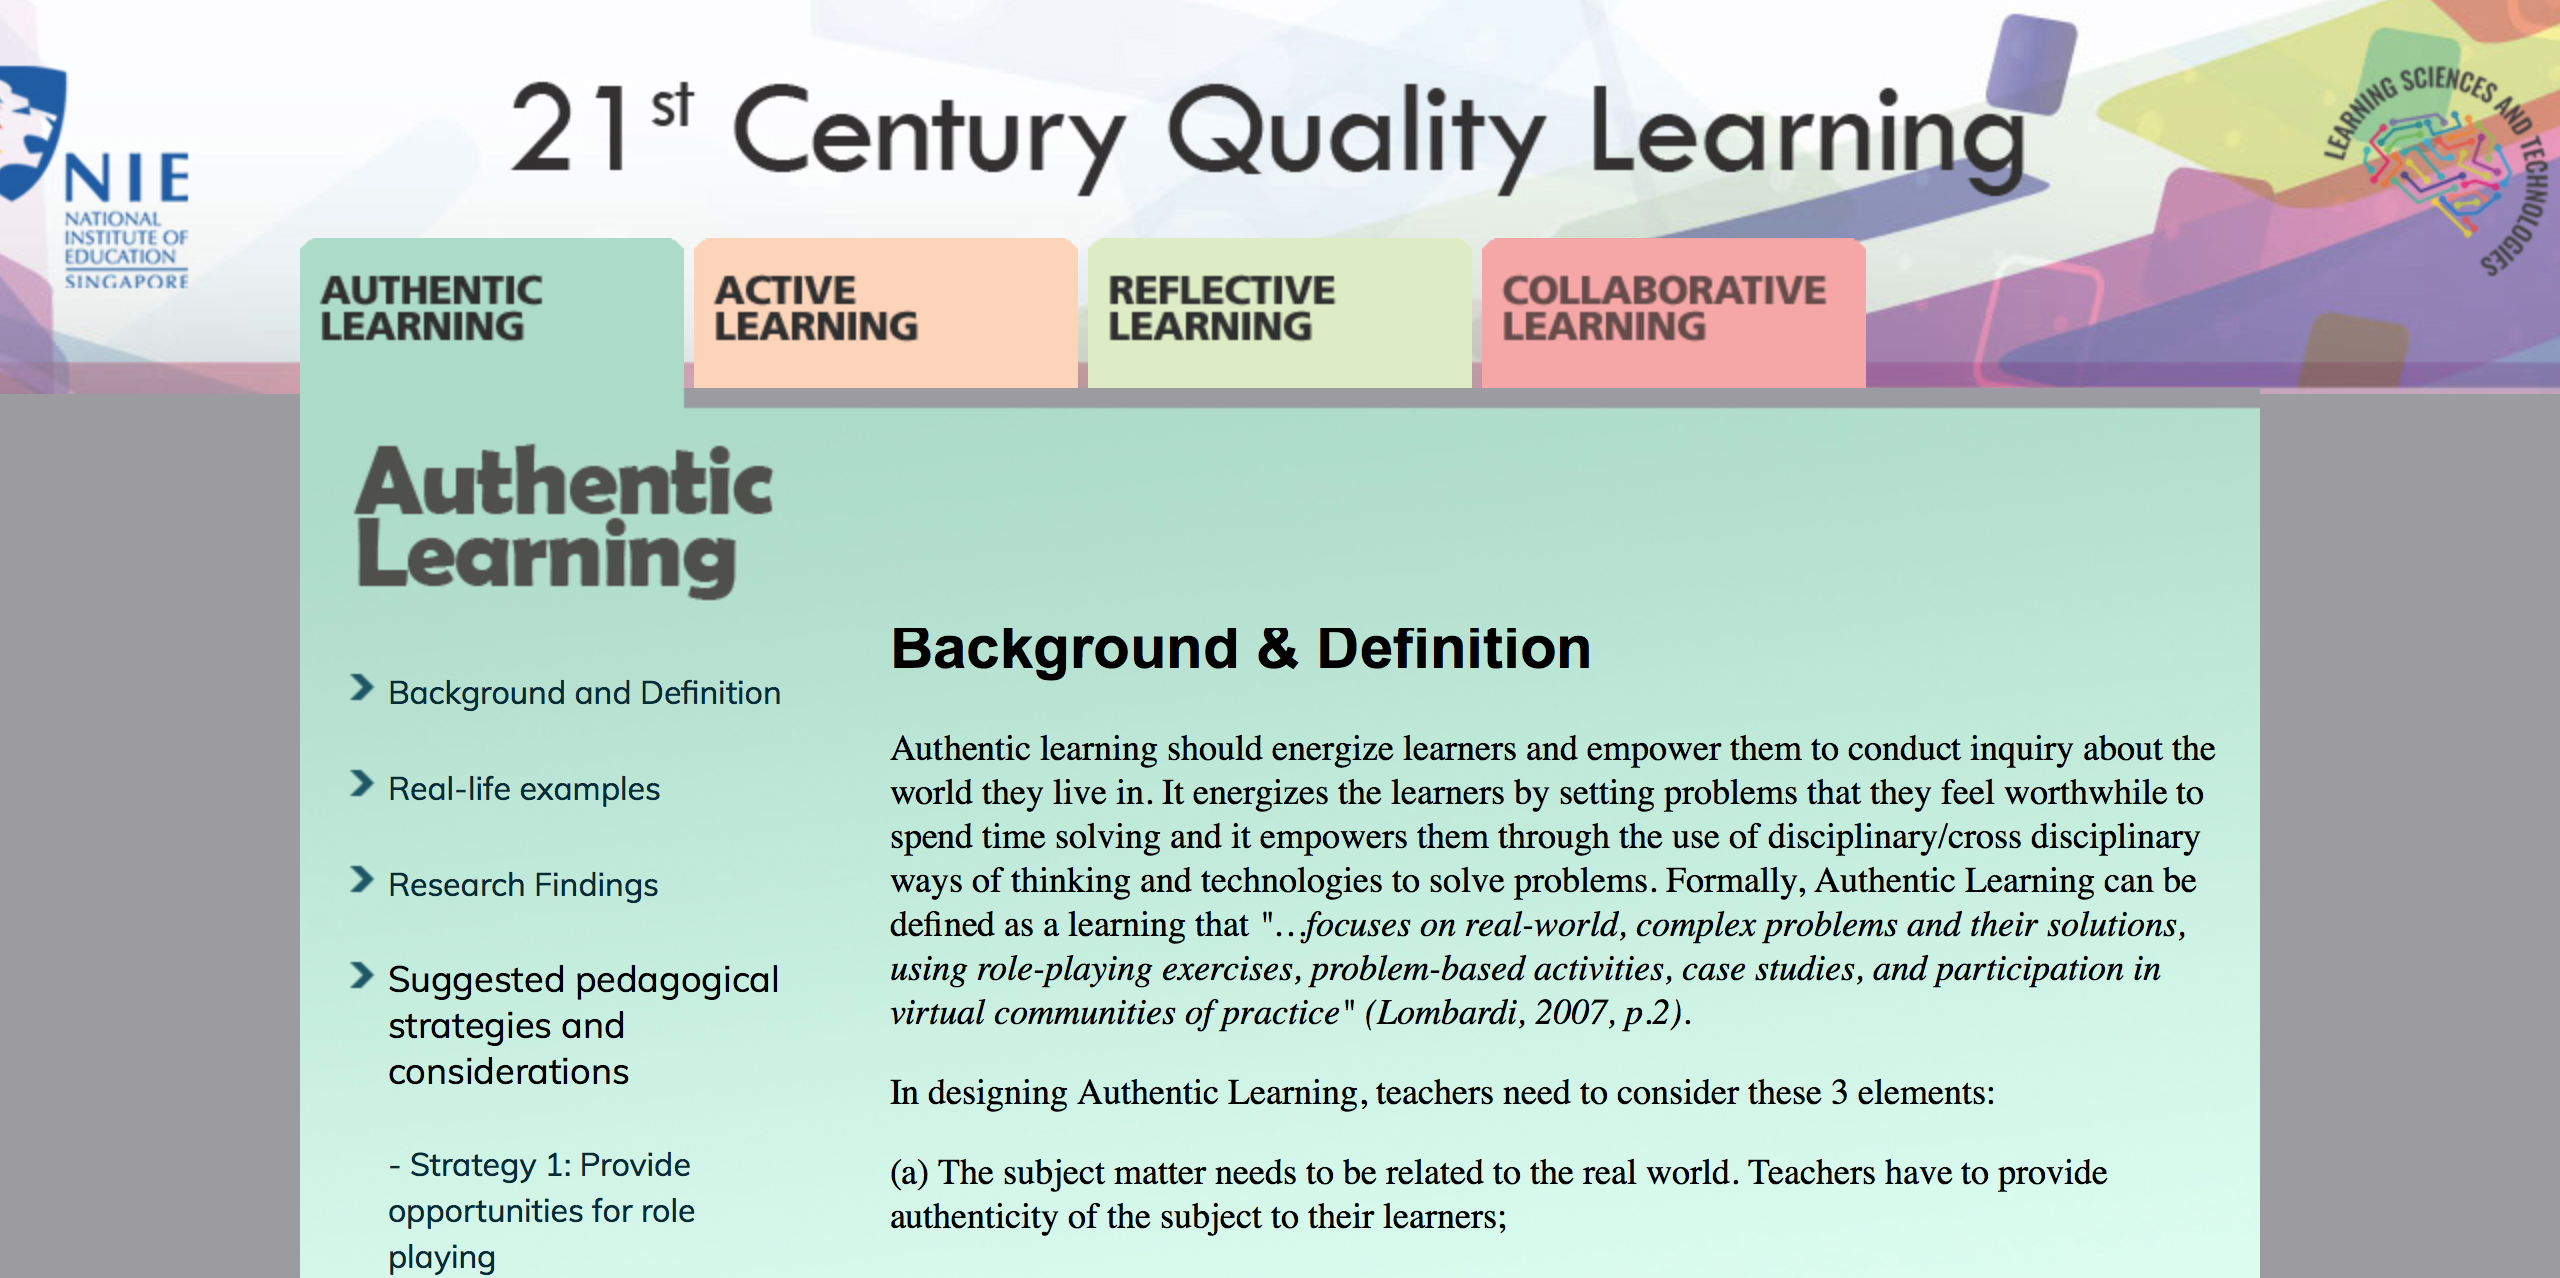 What does meaningful learning mean